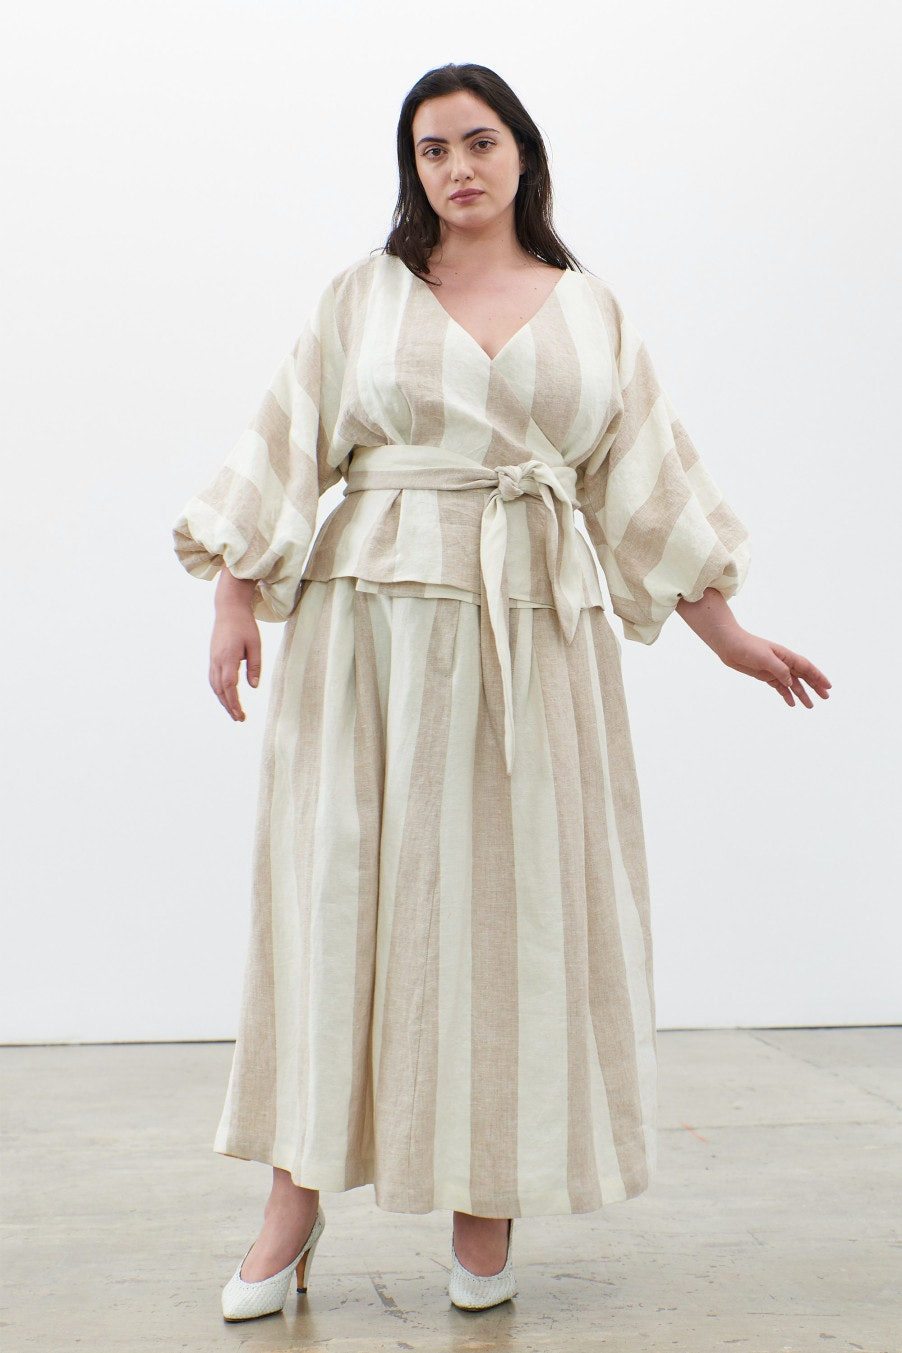 8 Sustainable Plus Size Clothing Brands That You Need To